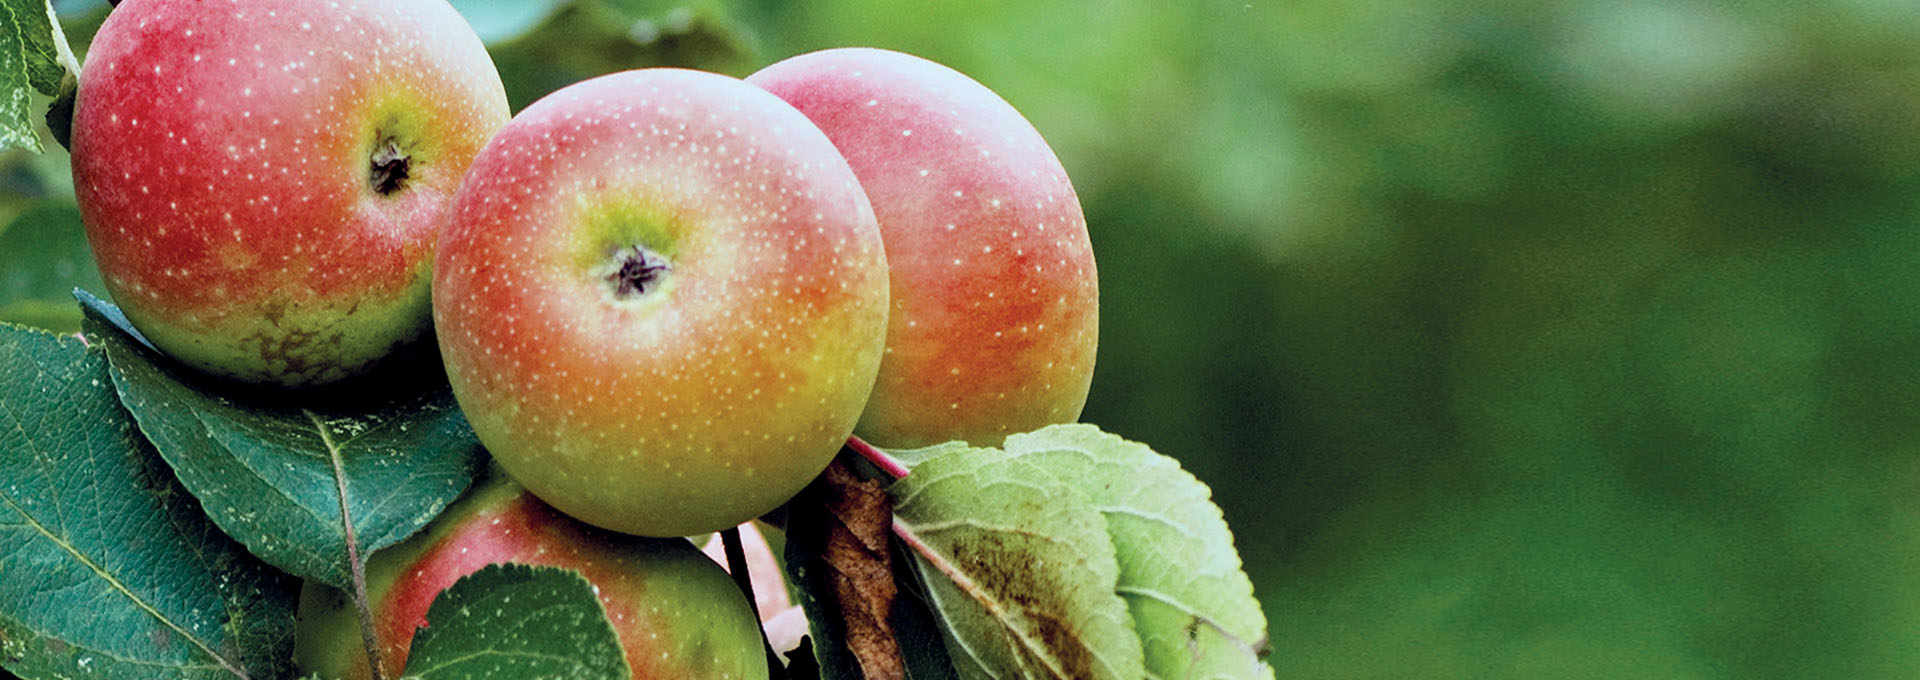 The Pink Apple of The Sibillini Mountains